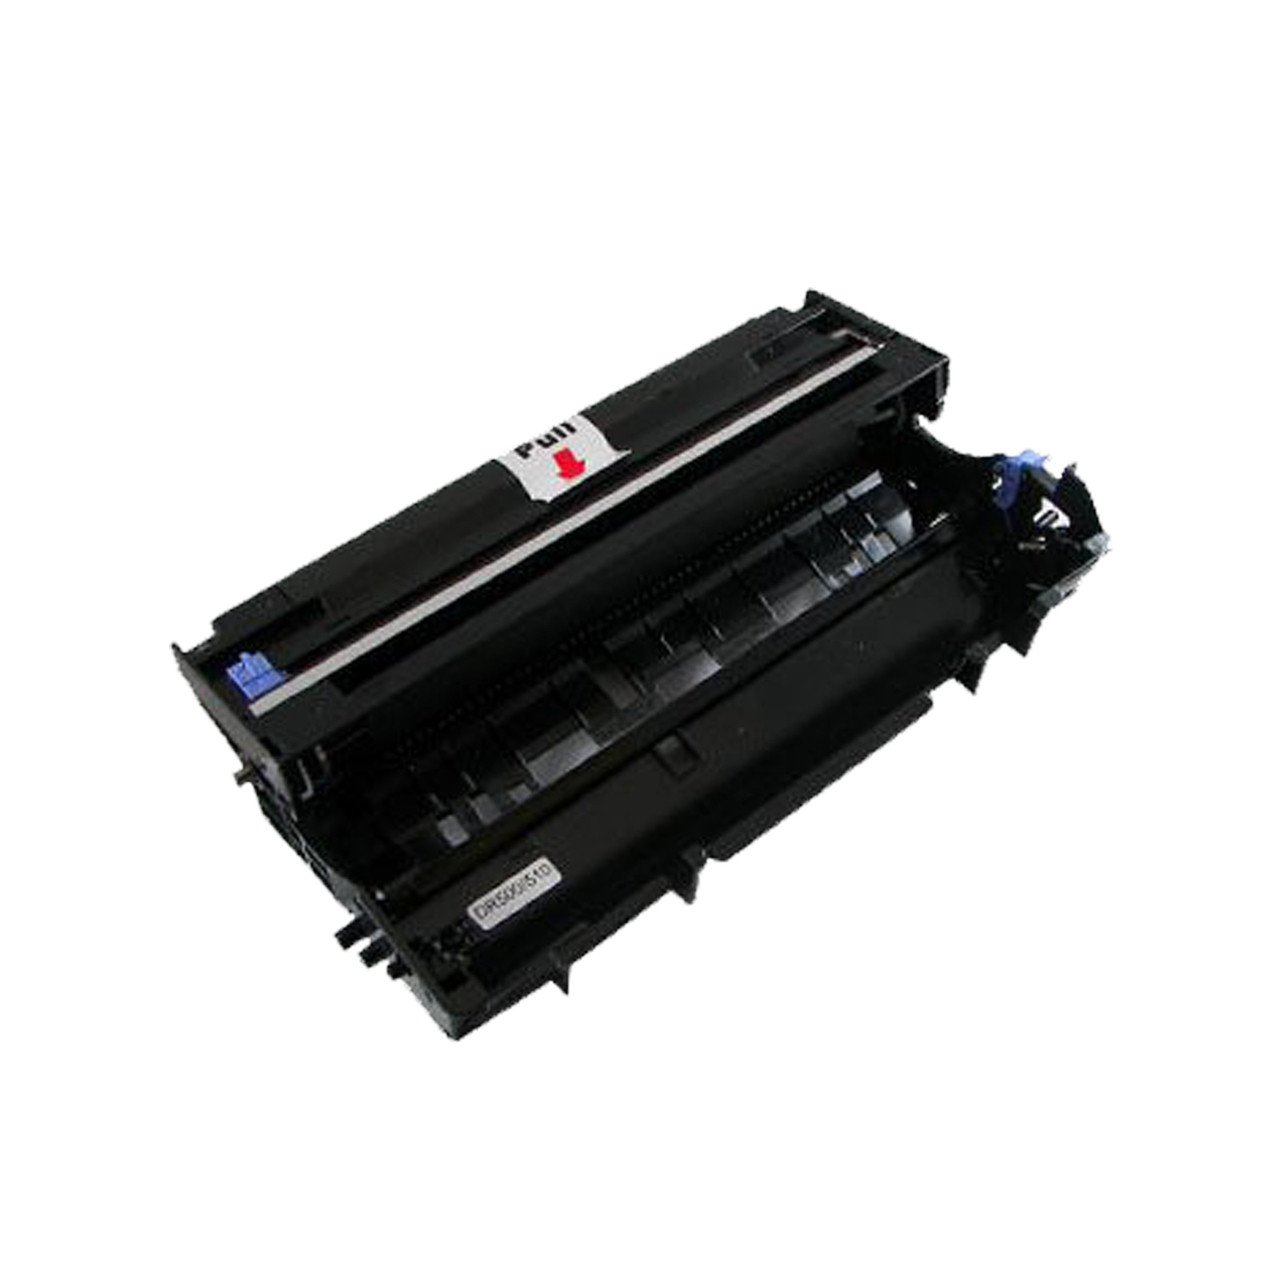 BROTHER PRINTER HL-5170DN WINDOWS 10 DRIVER